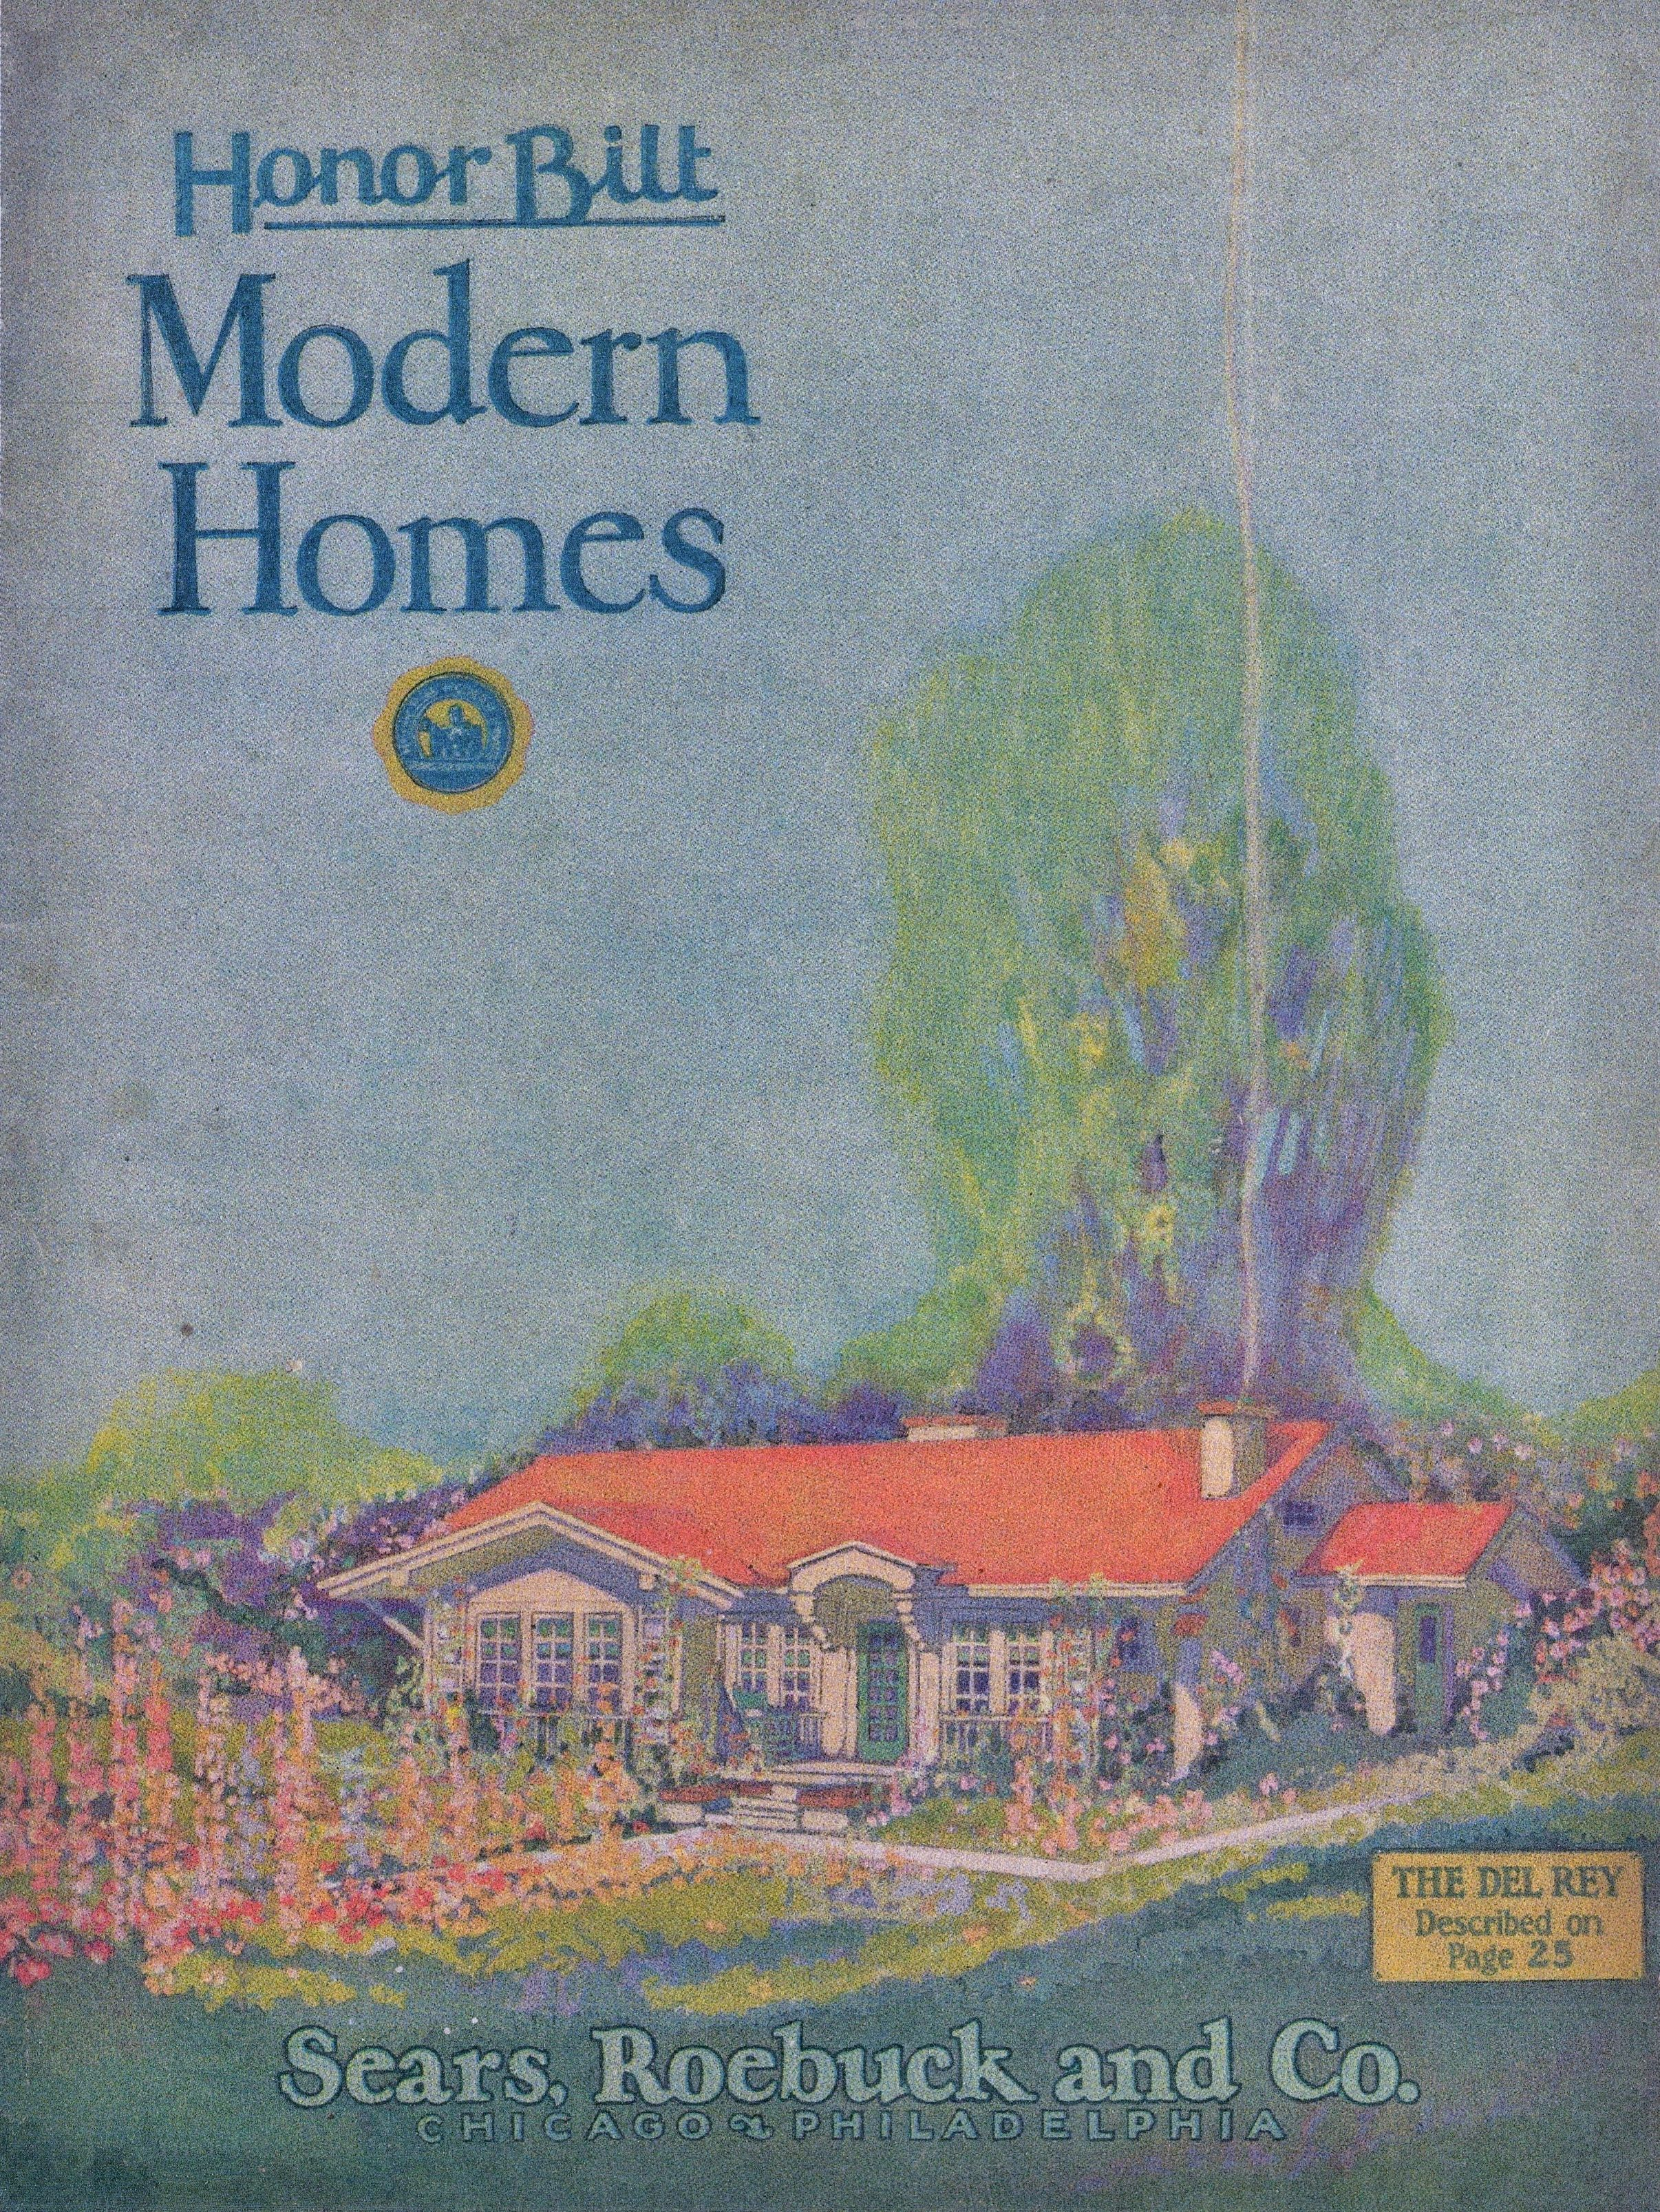 Our Old House 1920s Manual Guide